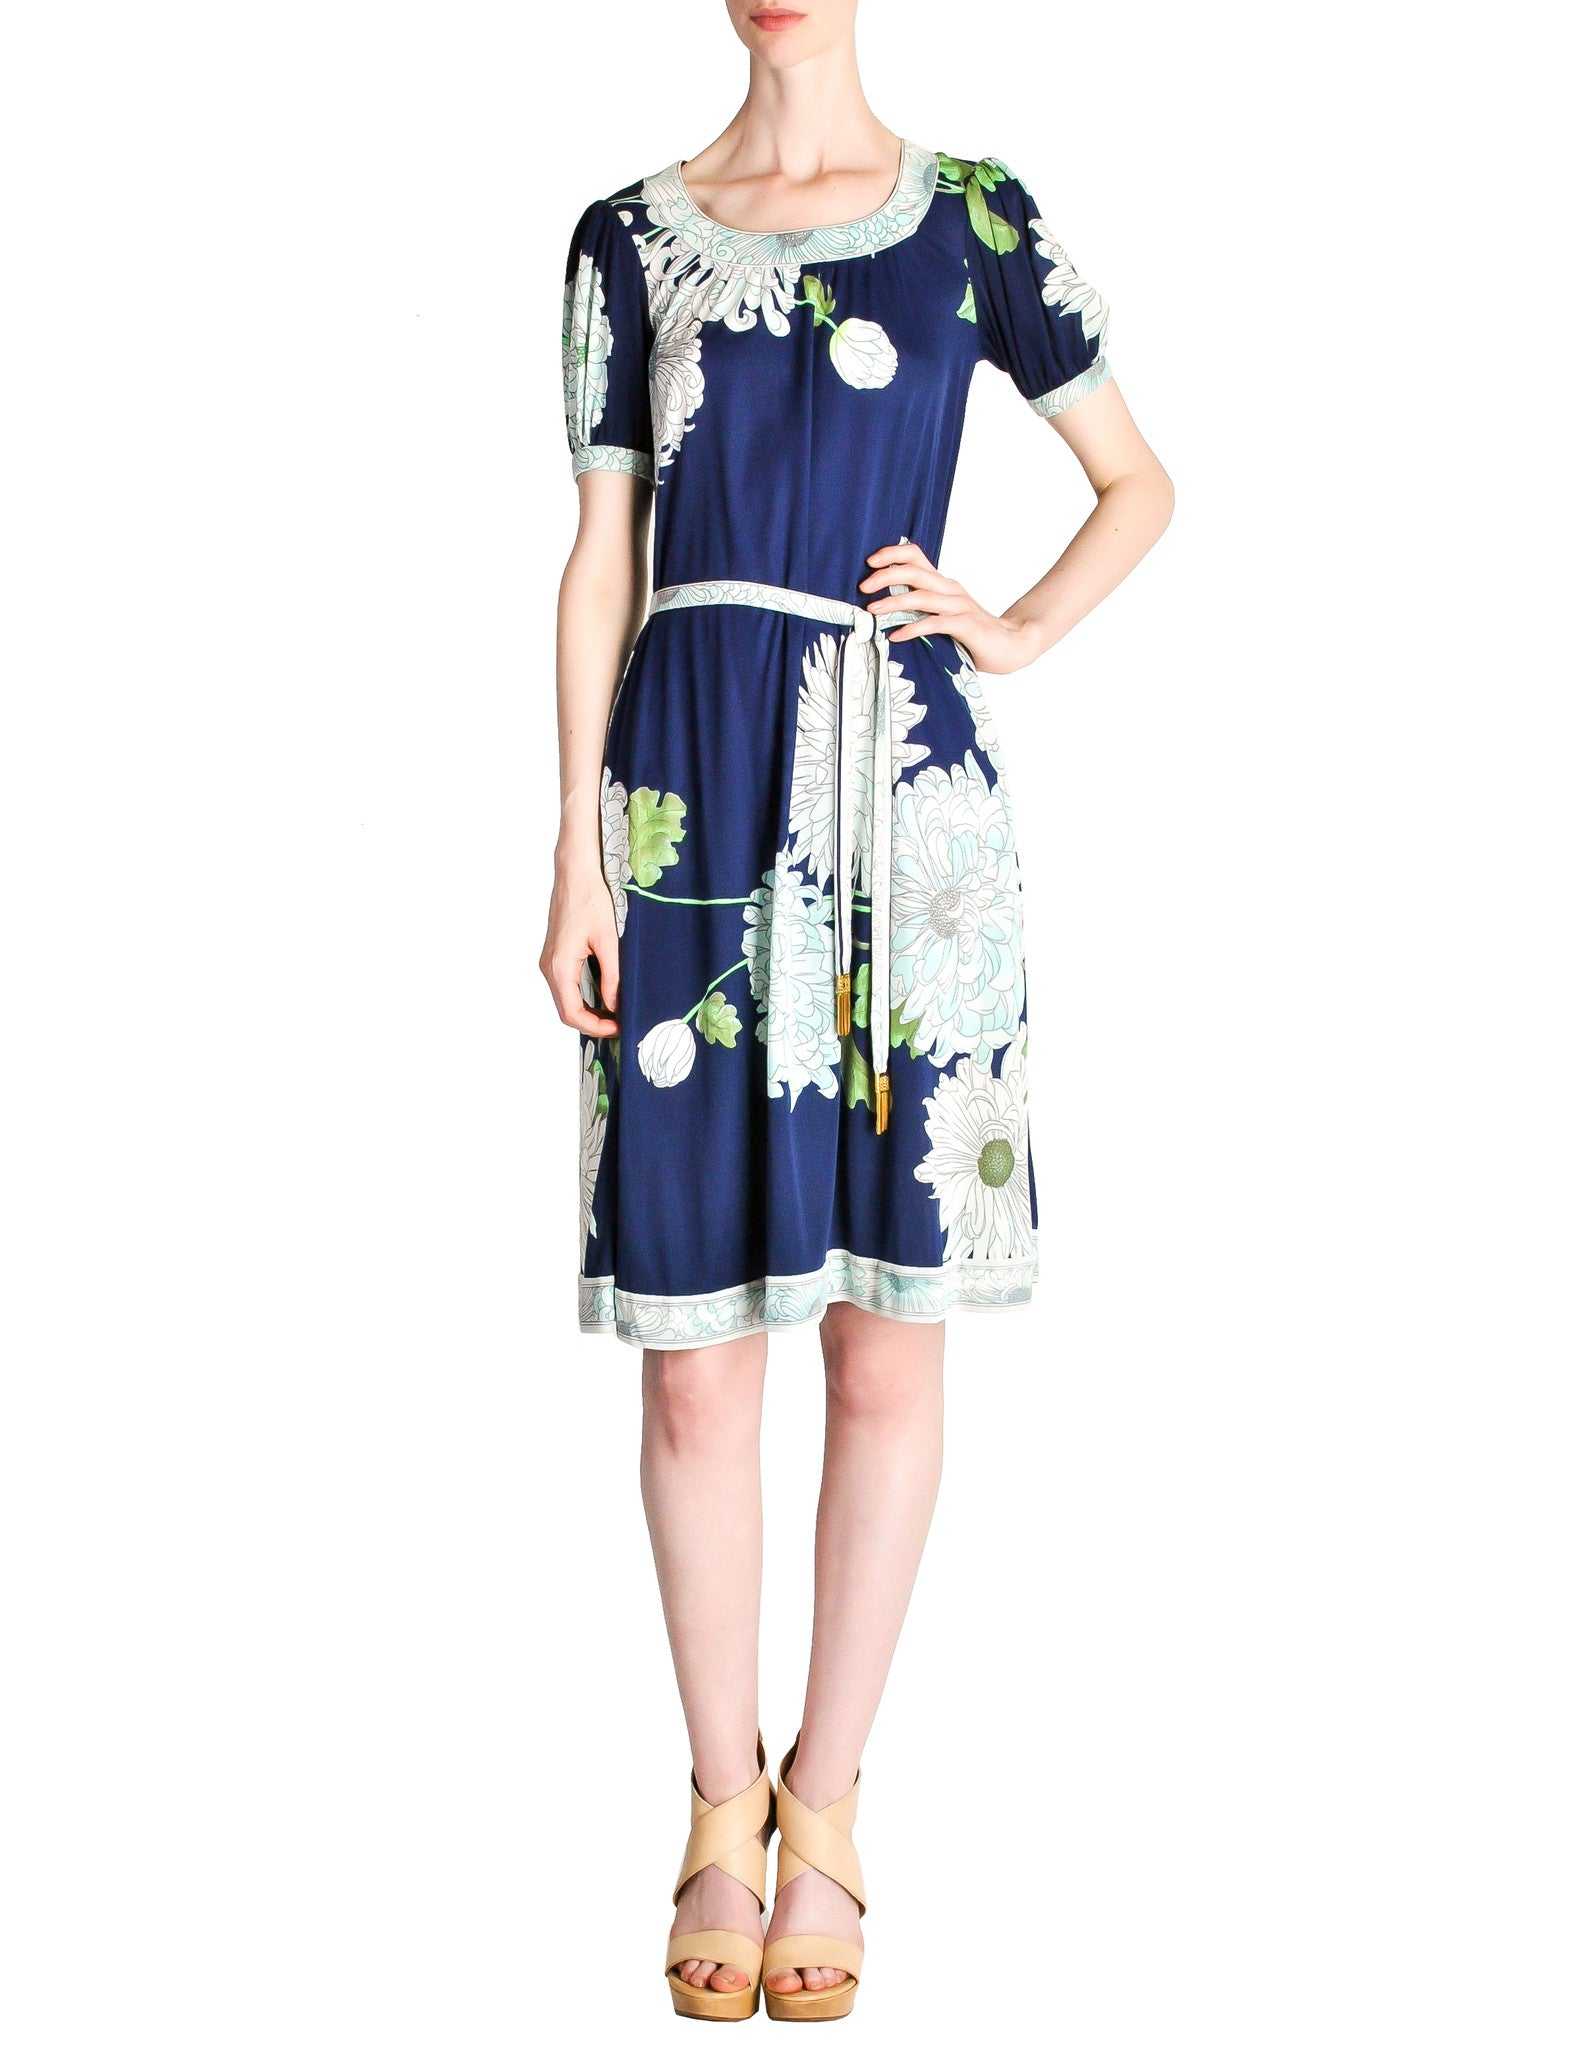 Leonard Vintage Blue Silk Jersey Floral Print Dress - Amarcord Vintage Fashion  - 1